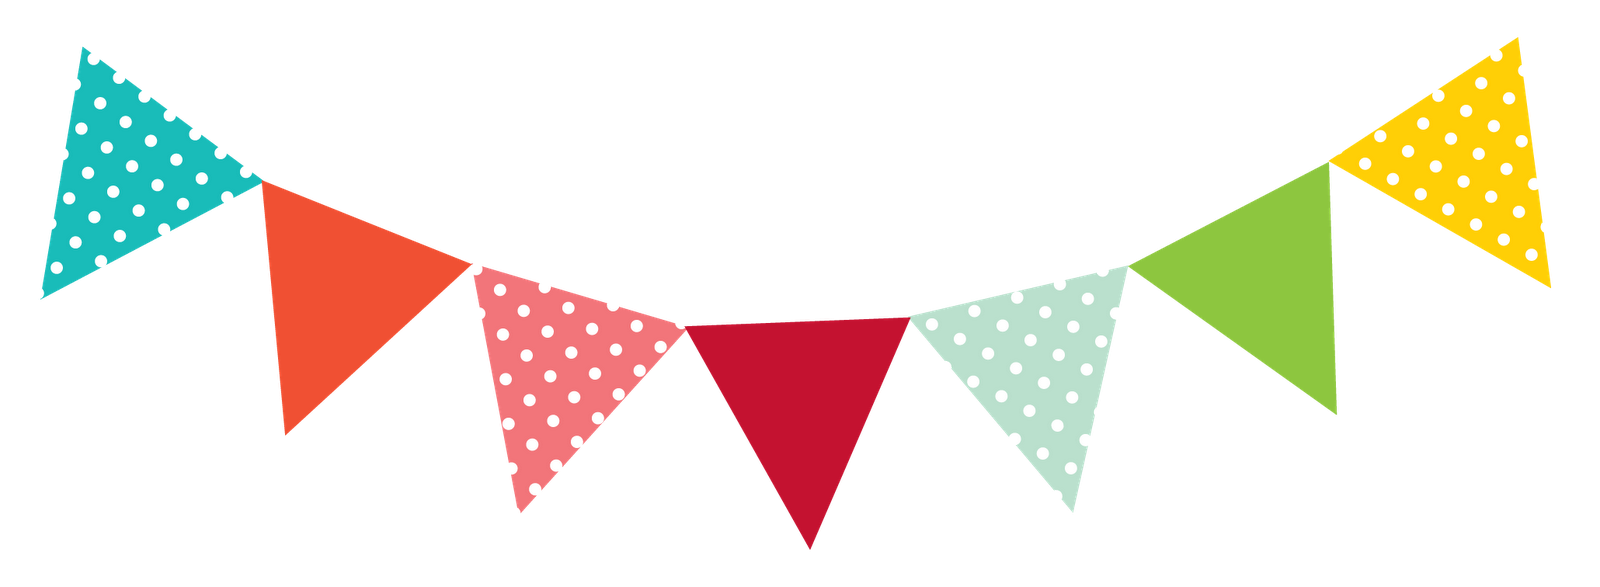 Party bunting png. Collection of free buntine